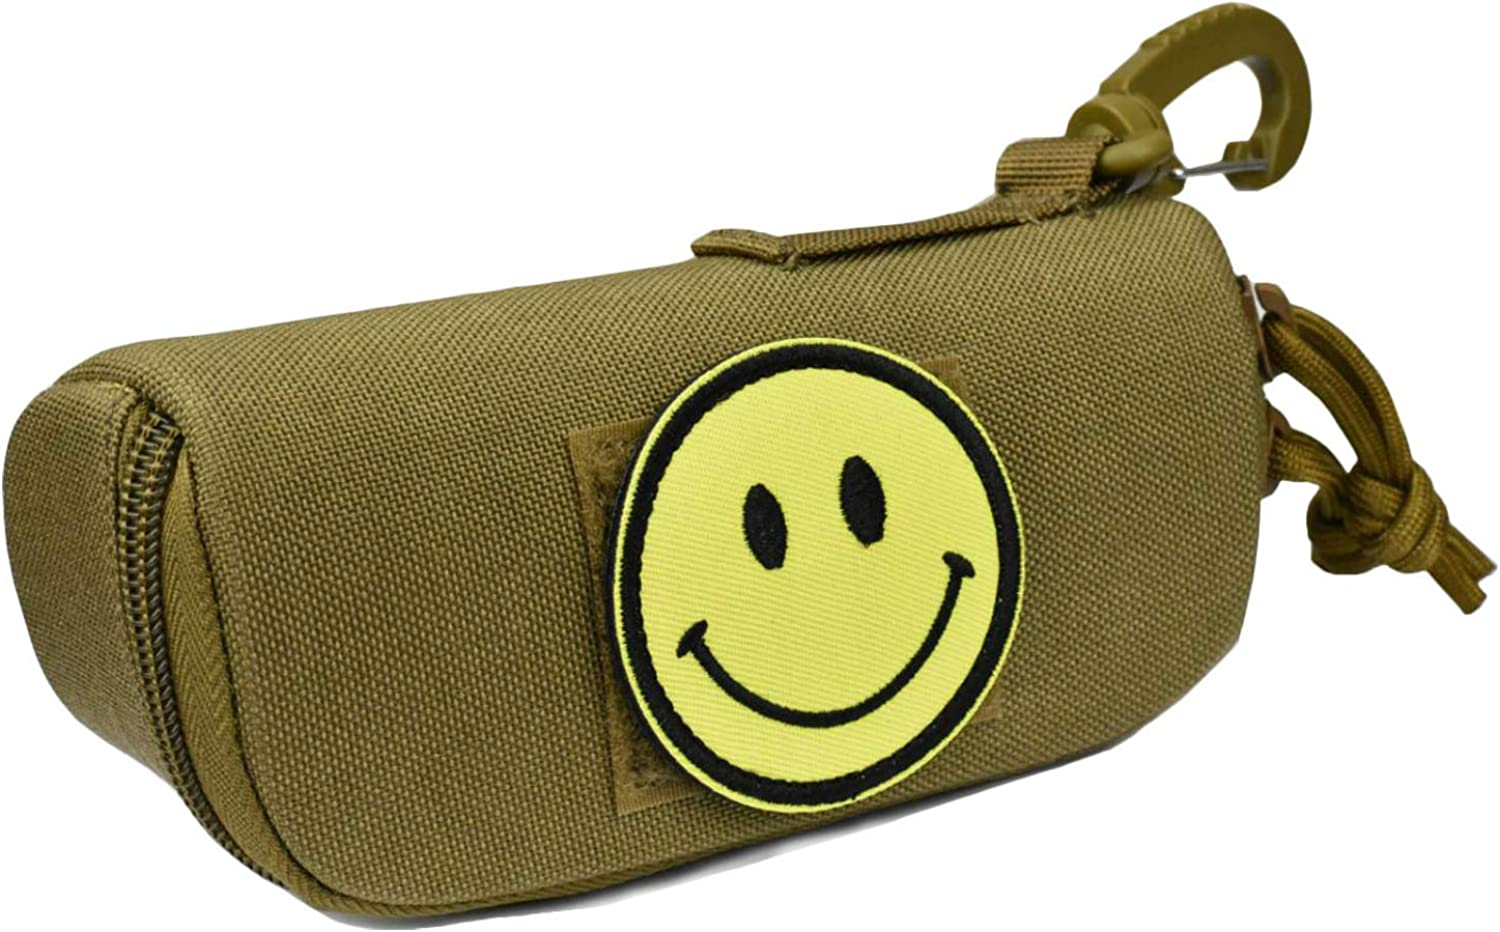 Sunglasses Hard Case Tactical Molle Eyeglasses sturdy Case Portable Hard Glasses Carrying Case